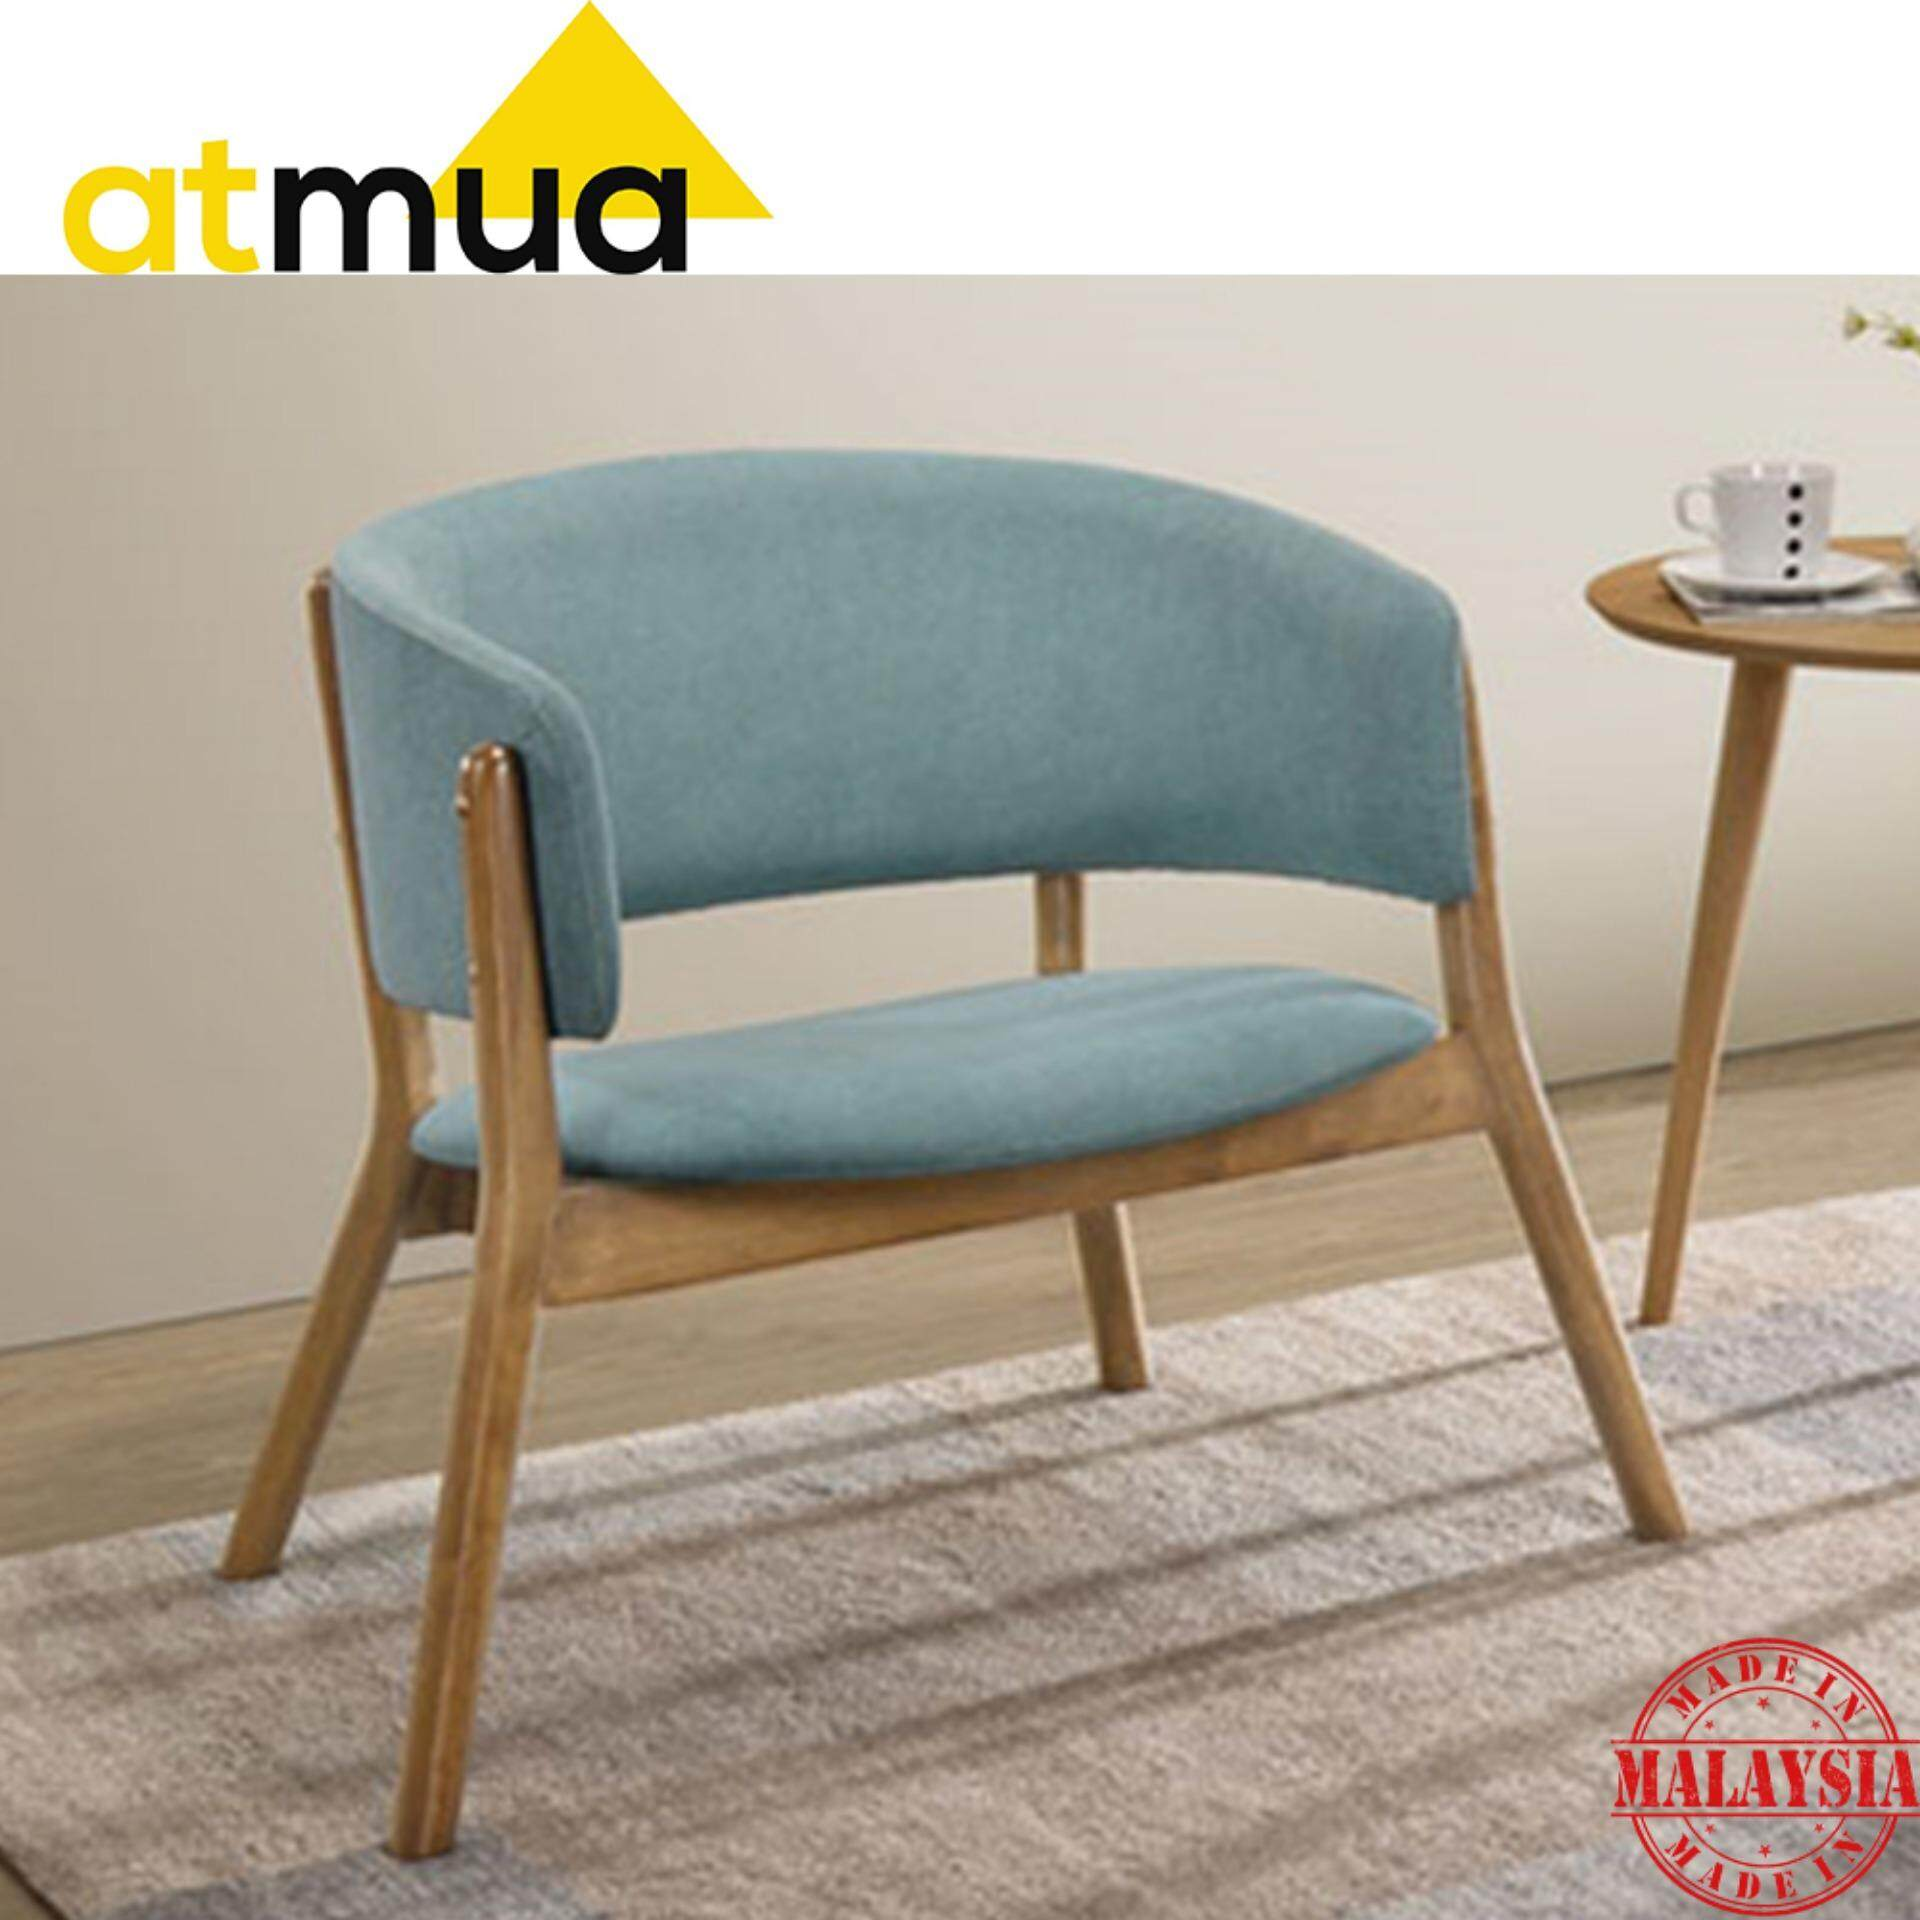 Atmua Milan Lounge Chair Set Full Solid Wood 2 Unit Chair